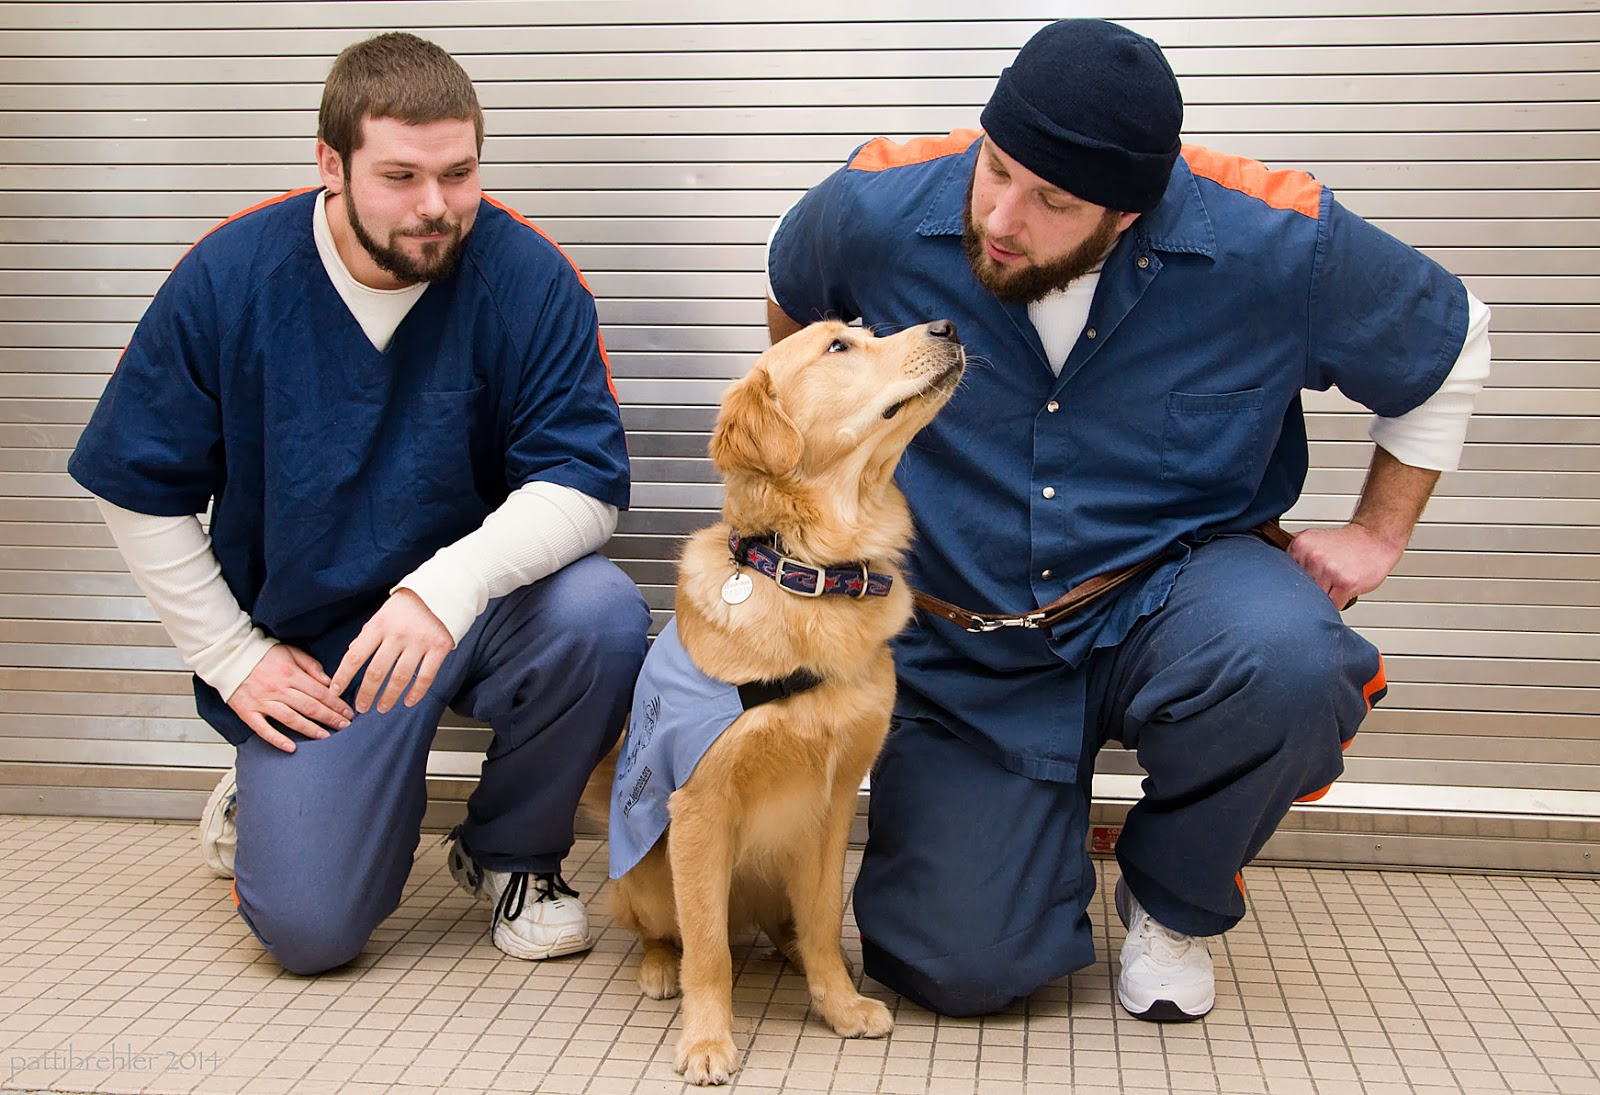 Two men dressed in blue shirts and blue pants are kneeling on one knee in front of a steel wall. An older golden retriever puppy is sitting between them wearing a baby blue jacket. The pup is looking up to the man on the right (who is wearing a blud knit cap). That man is looking back at the pup. The man on the left is also looking at the pup and not the camers.